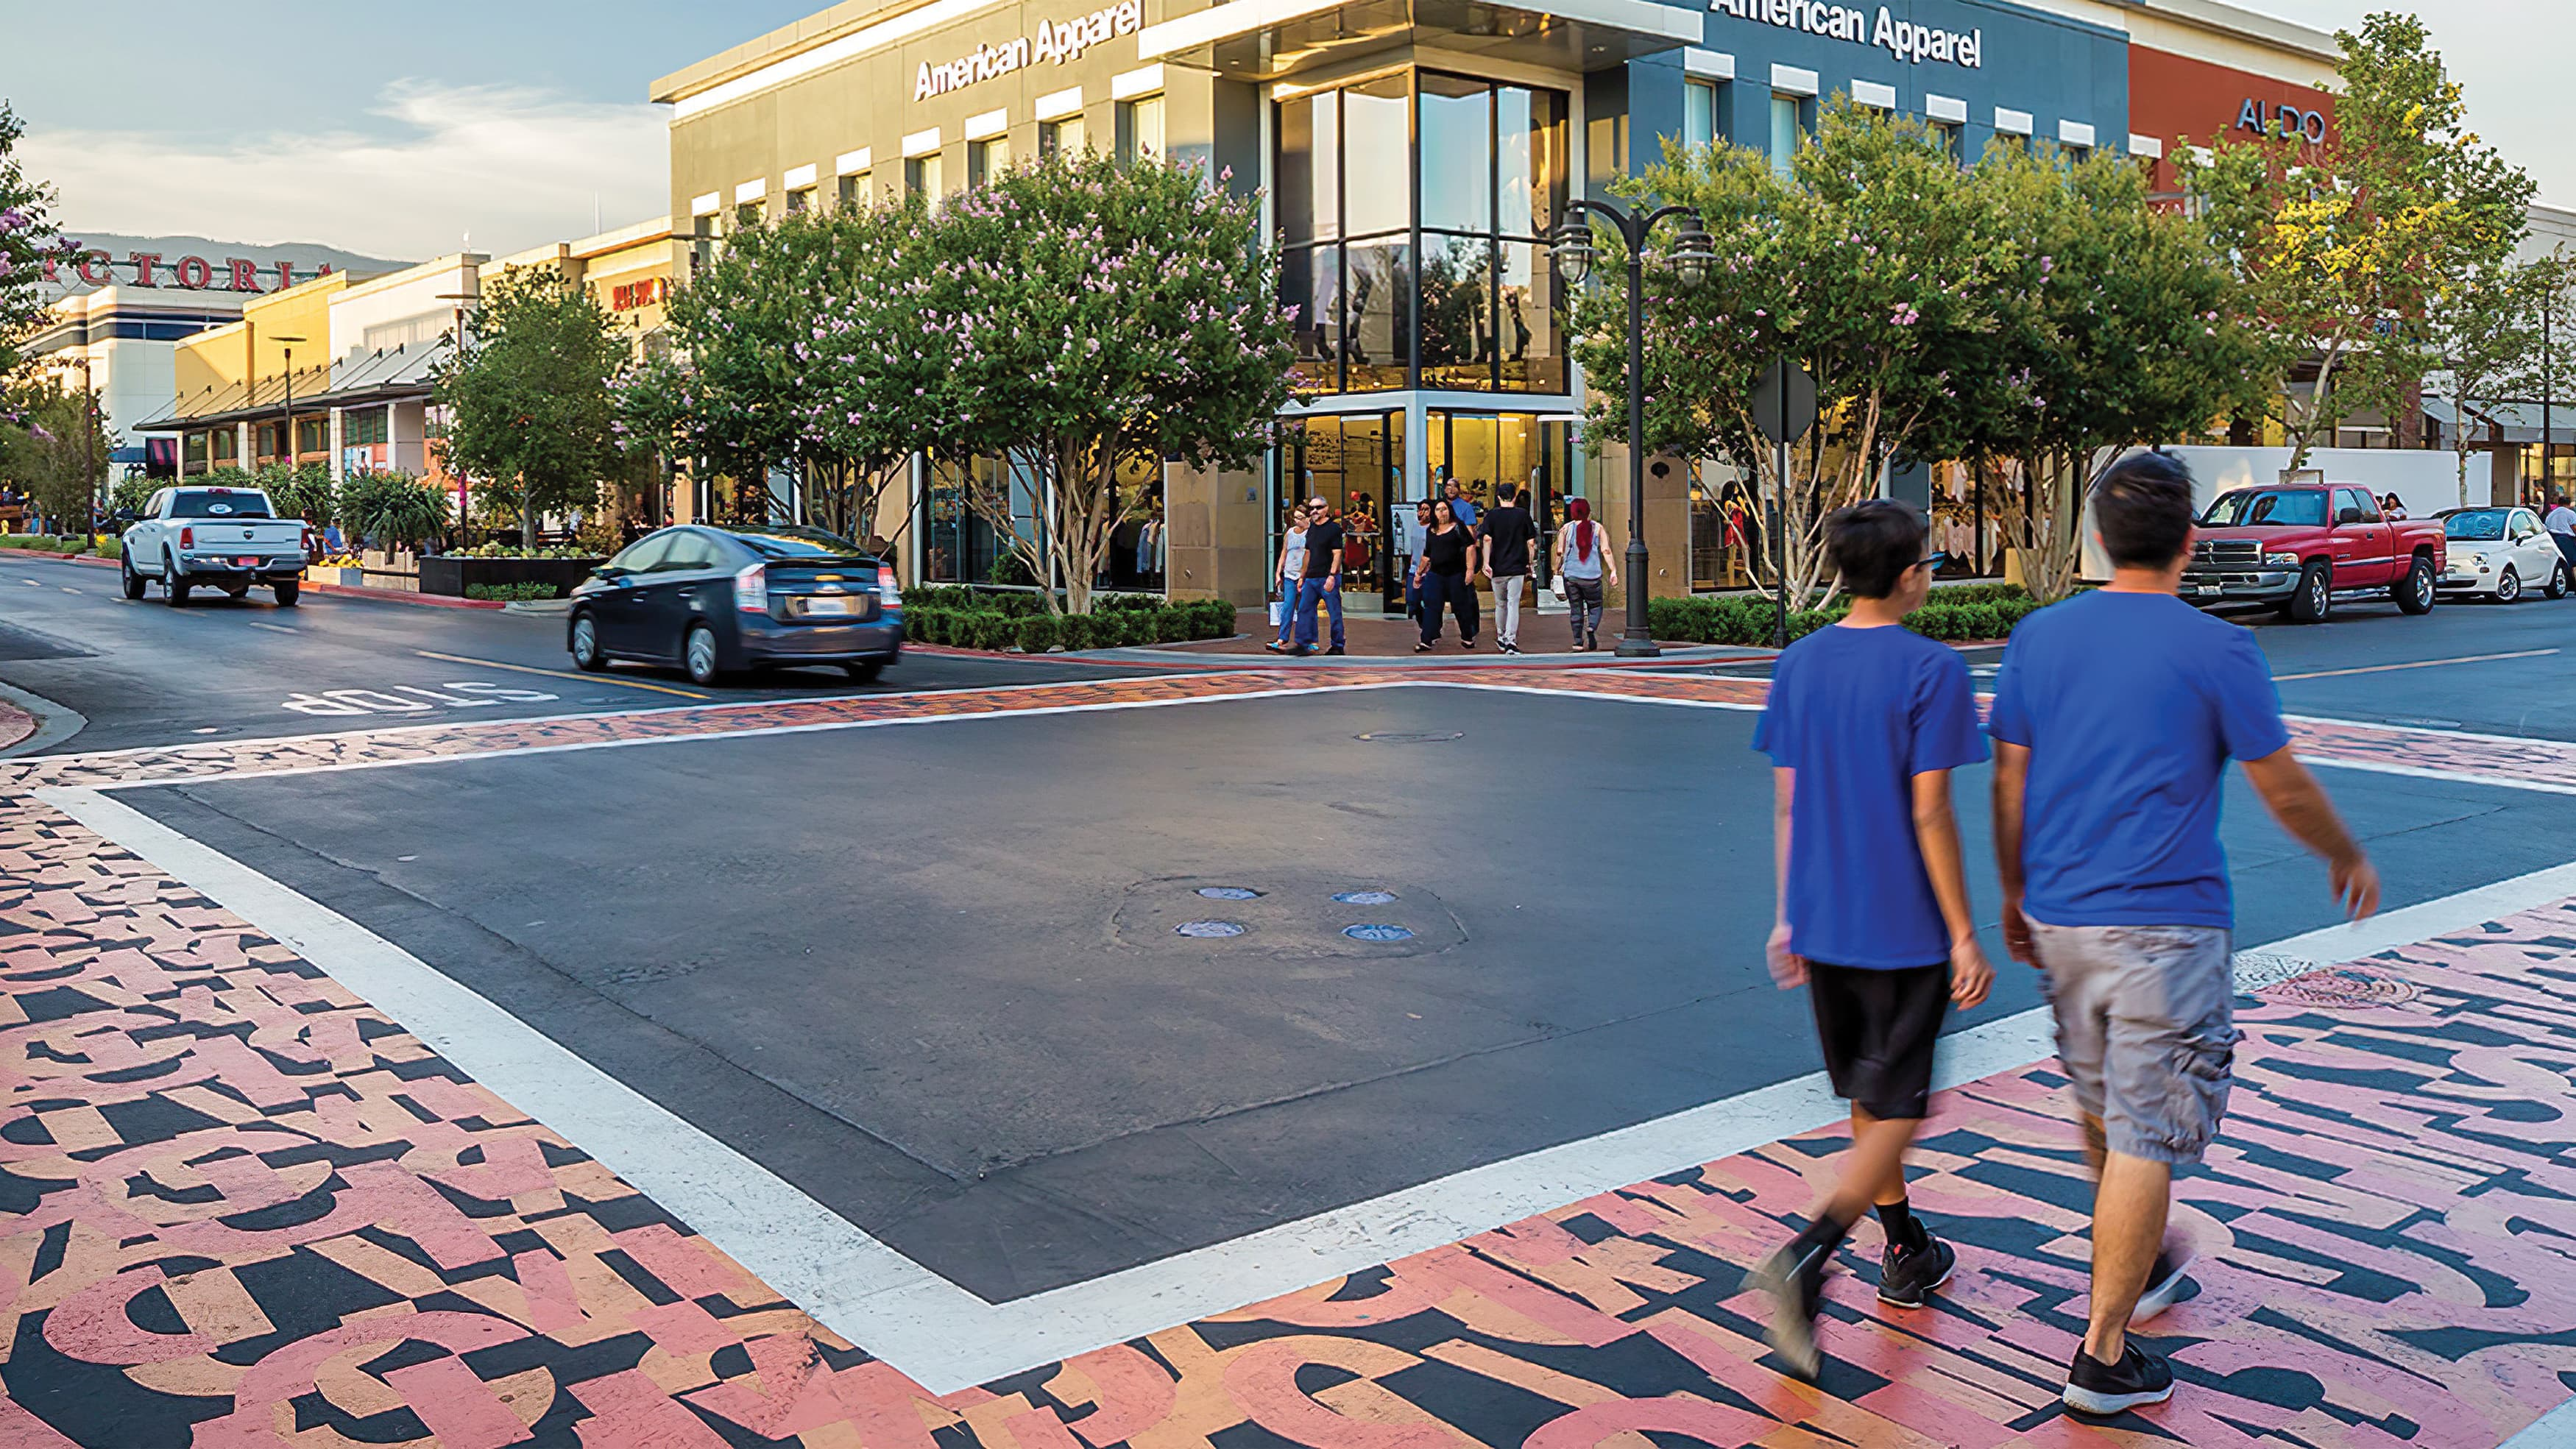 Father and son walk across custom designed crosswalk towards retail stores with background.